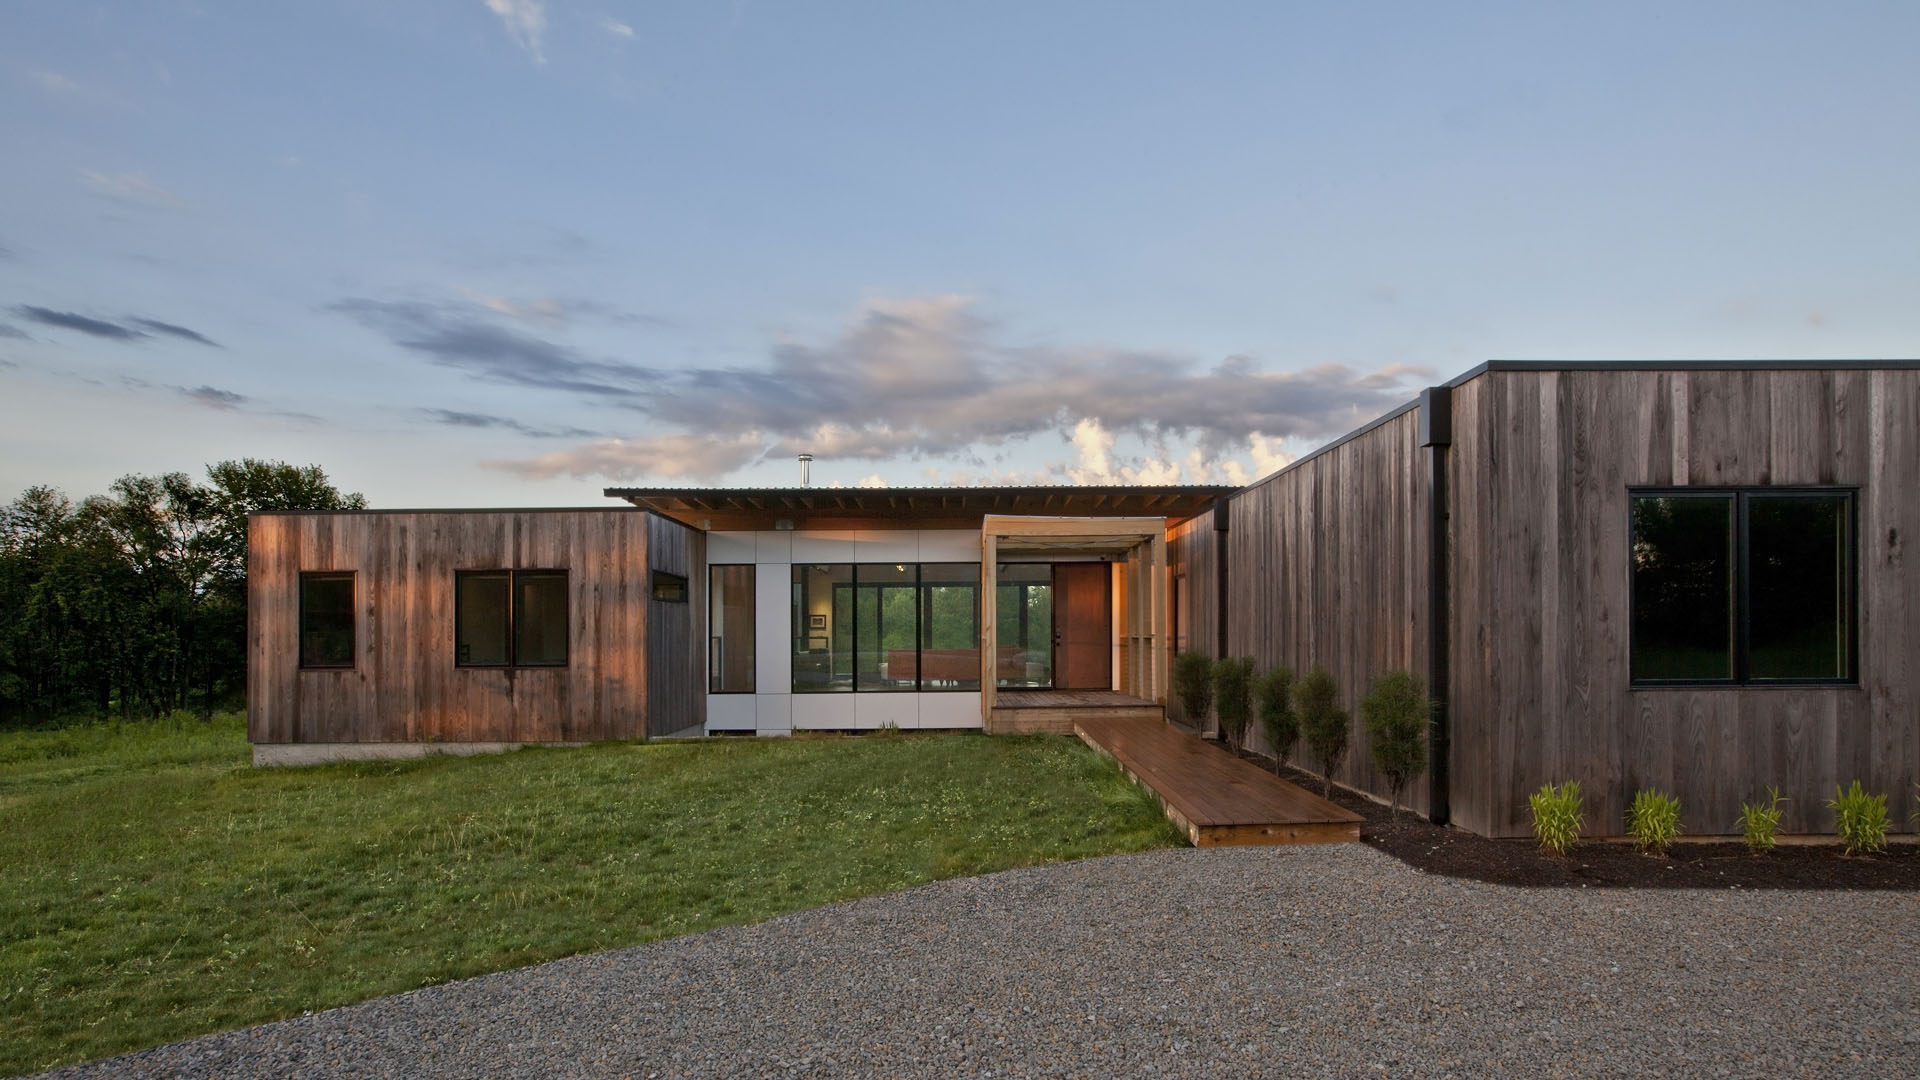 North Exterior Elevation (summer morning) - New Modern House 1 (Copperwood) - Zionsville, IN